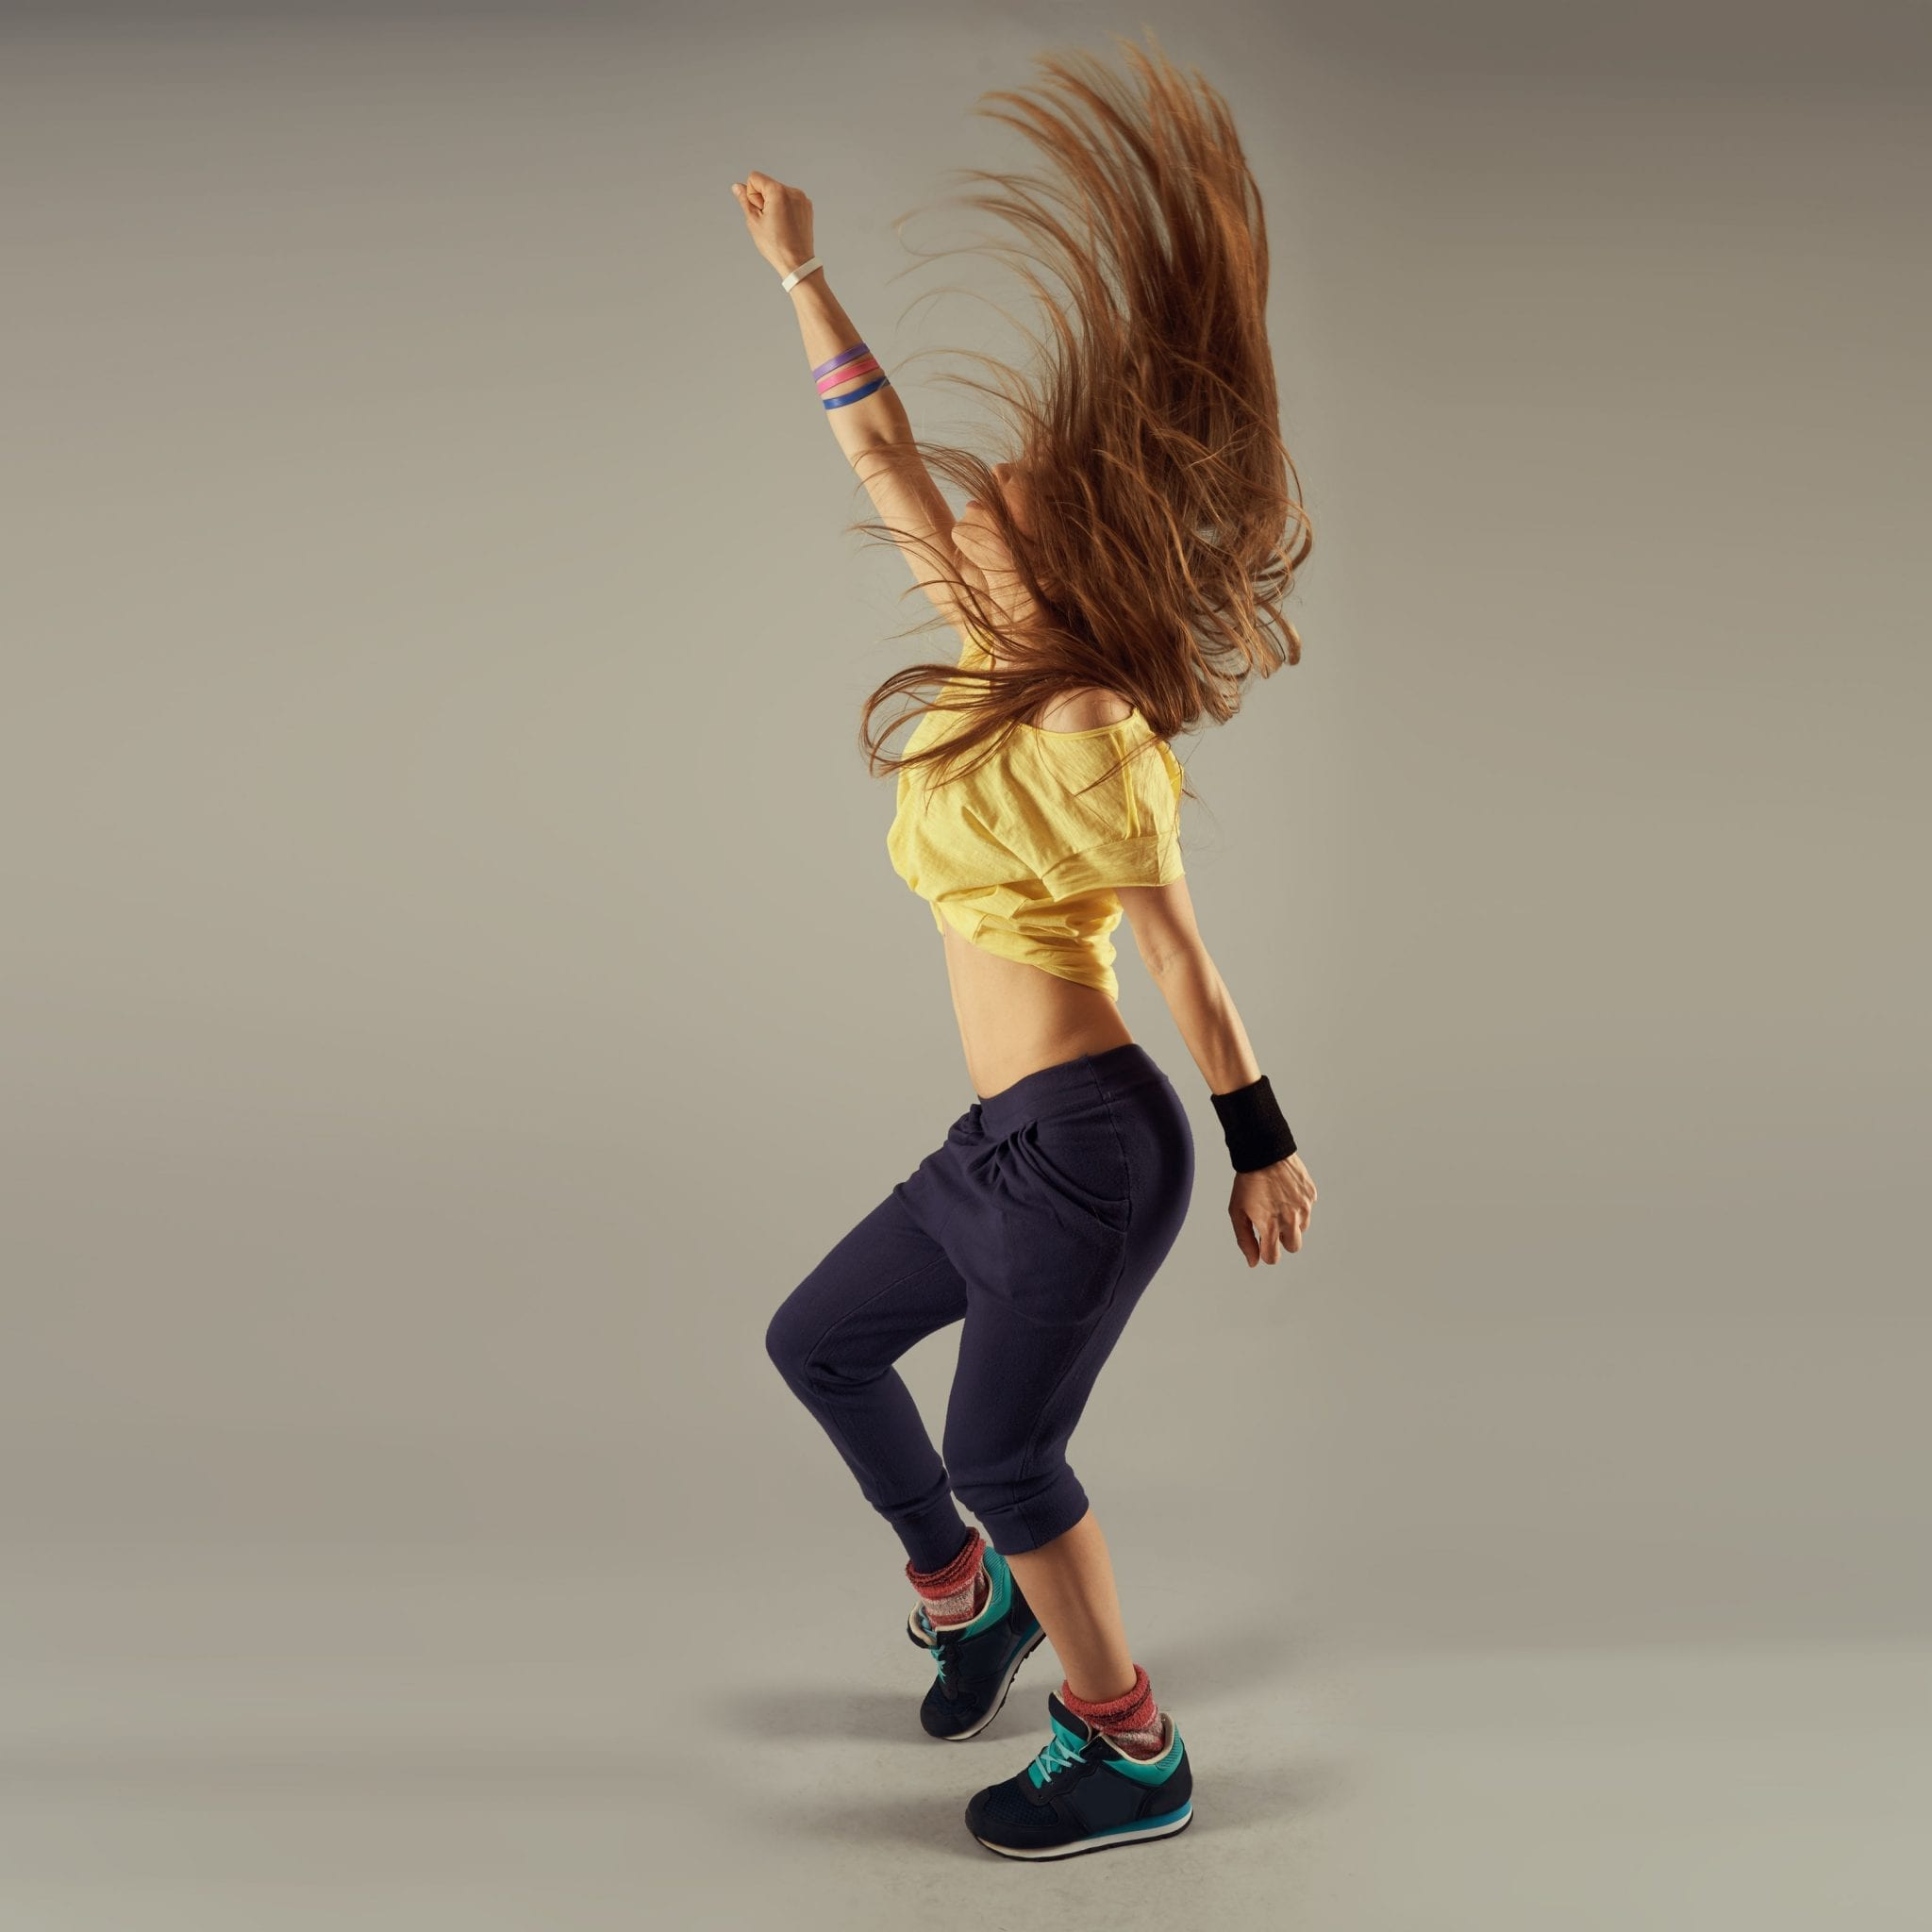 BeachBody YOUv2 - A Dance-Inspired Workout for Beginners